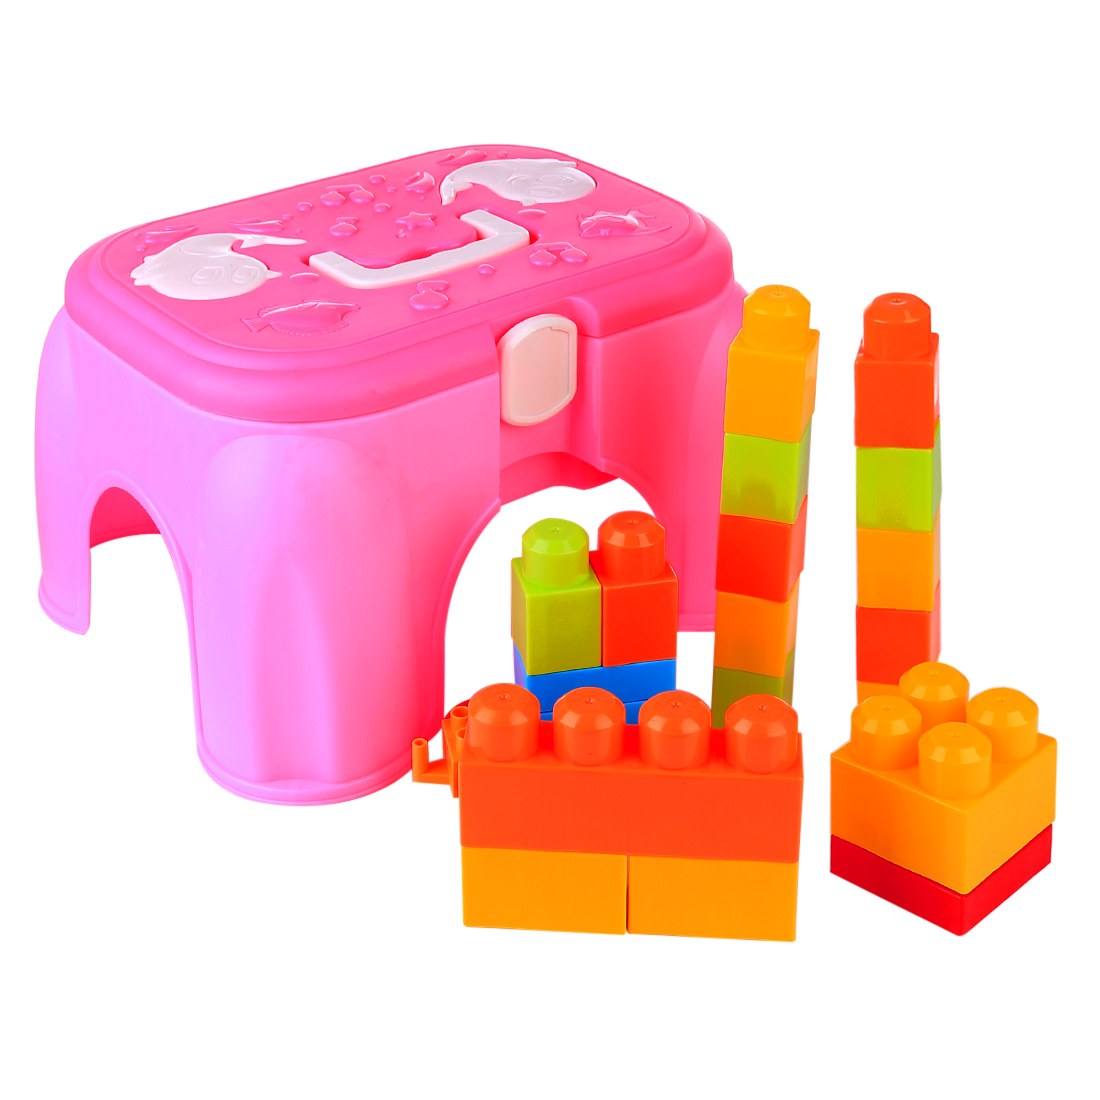 20Pcs Outdoor Beach Sand Toys Storage Chair Playset Summer Kids Beach Sand Toys Set For Baby Children - (Parts Random Color)